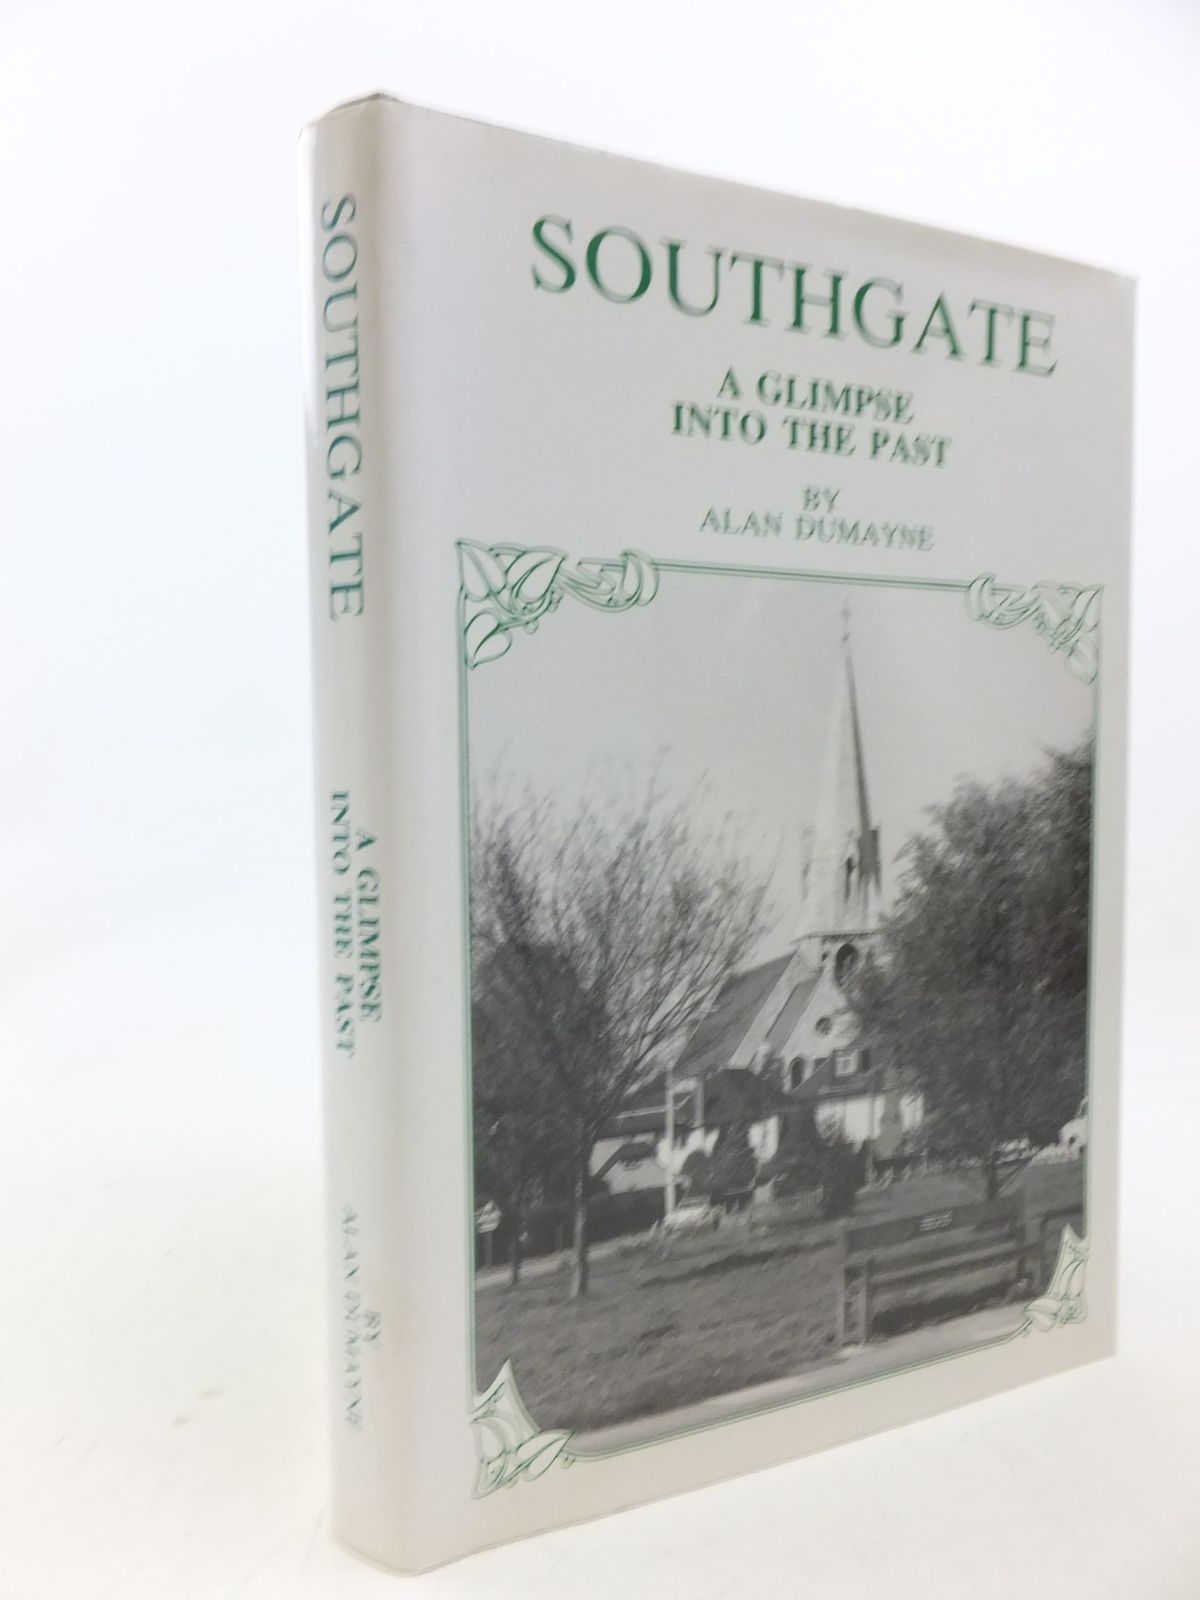 Photo of SOUTHGATE A GLIMPSE INTO THE PAST written by Dumayne, Alan published by Macdermott & Chant Ltd. (STOCK CODE: 2113992)  for sale by Stella & Rose's Books